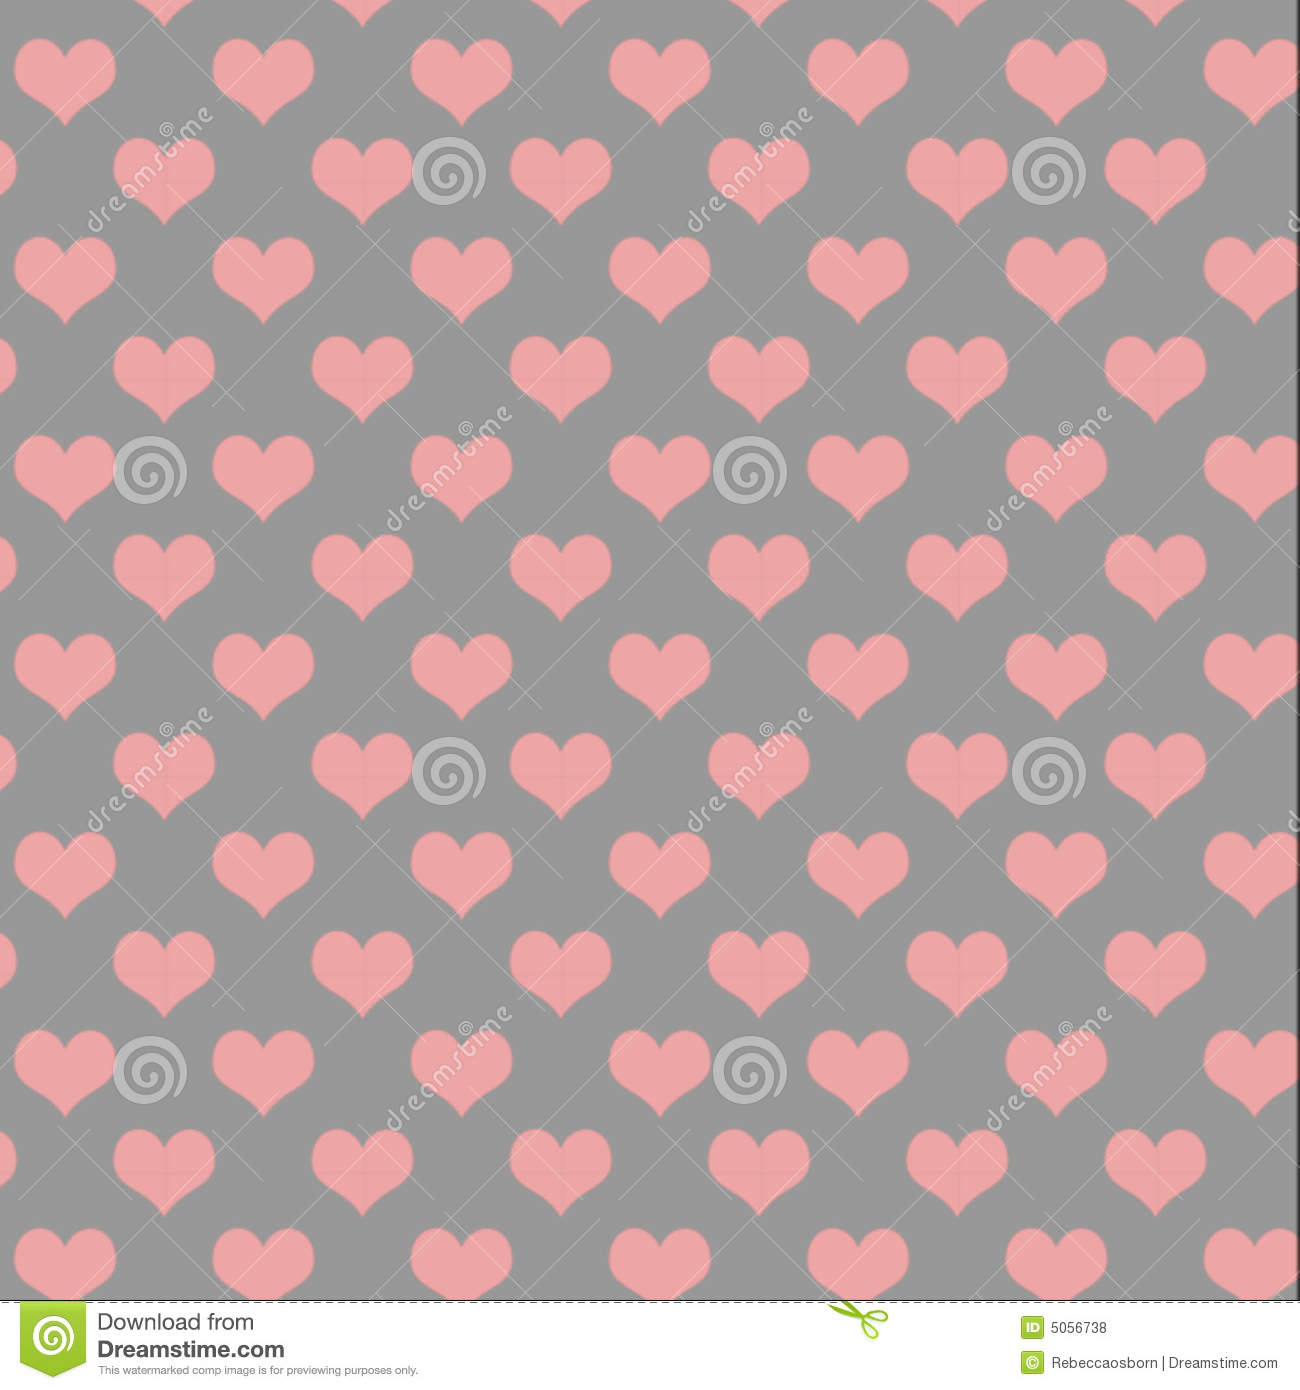 Gray And Pink Hearts: Grey And Pink Heart Pattern Royalty Free Stock Photos